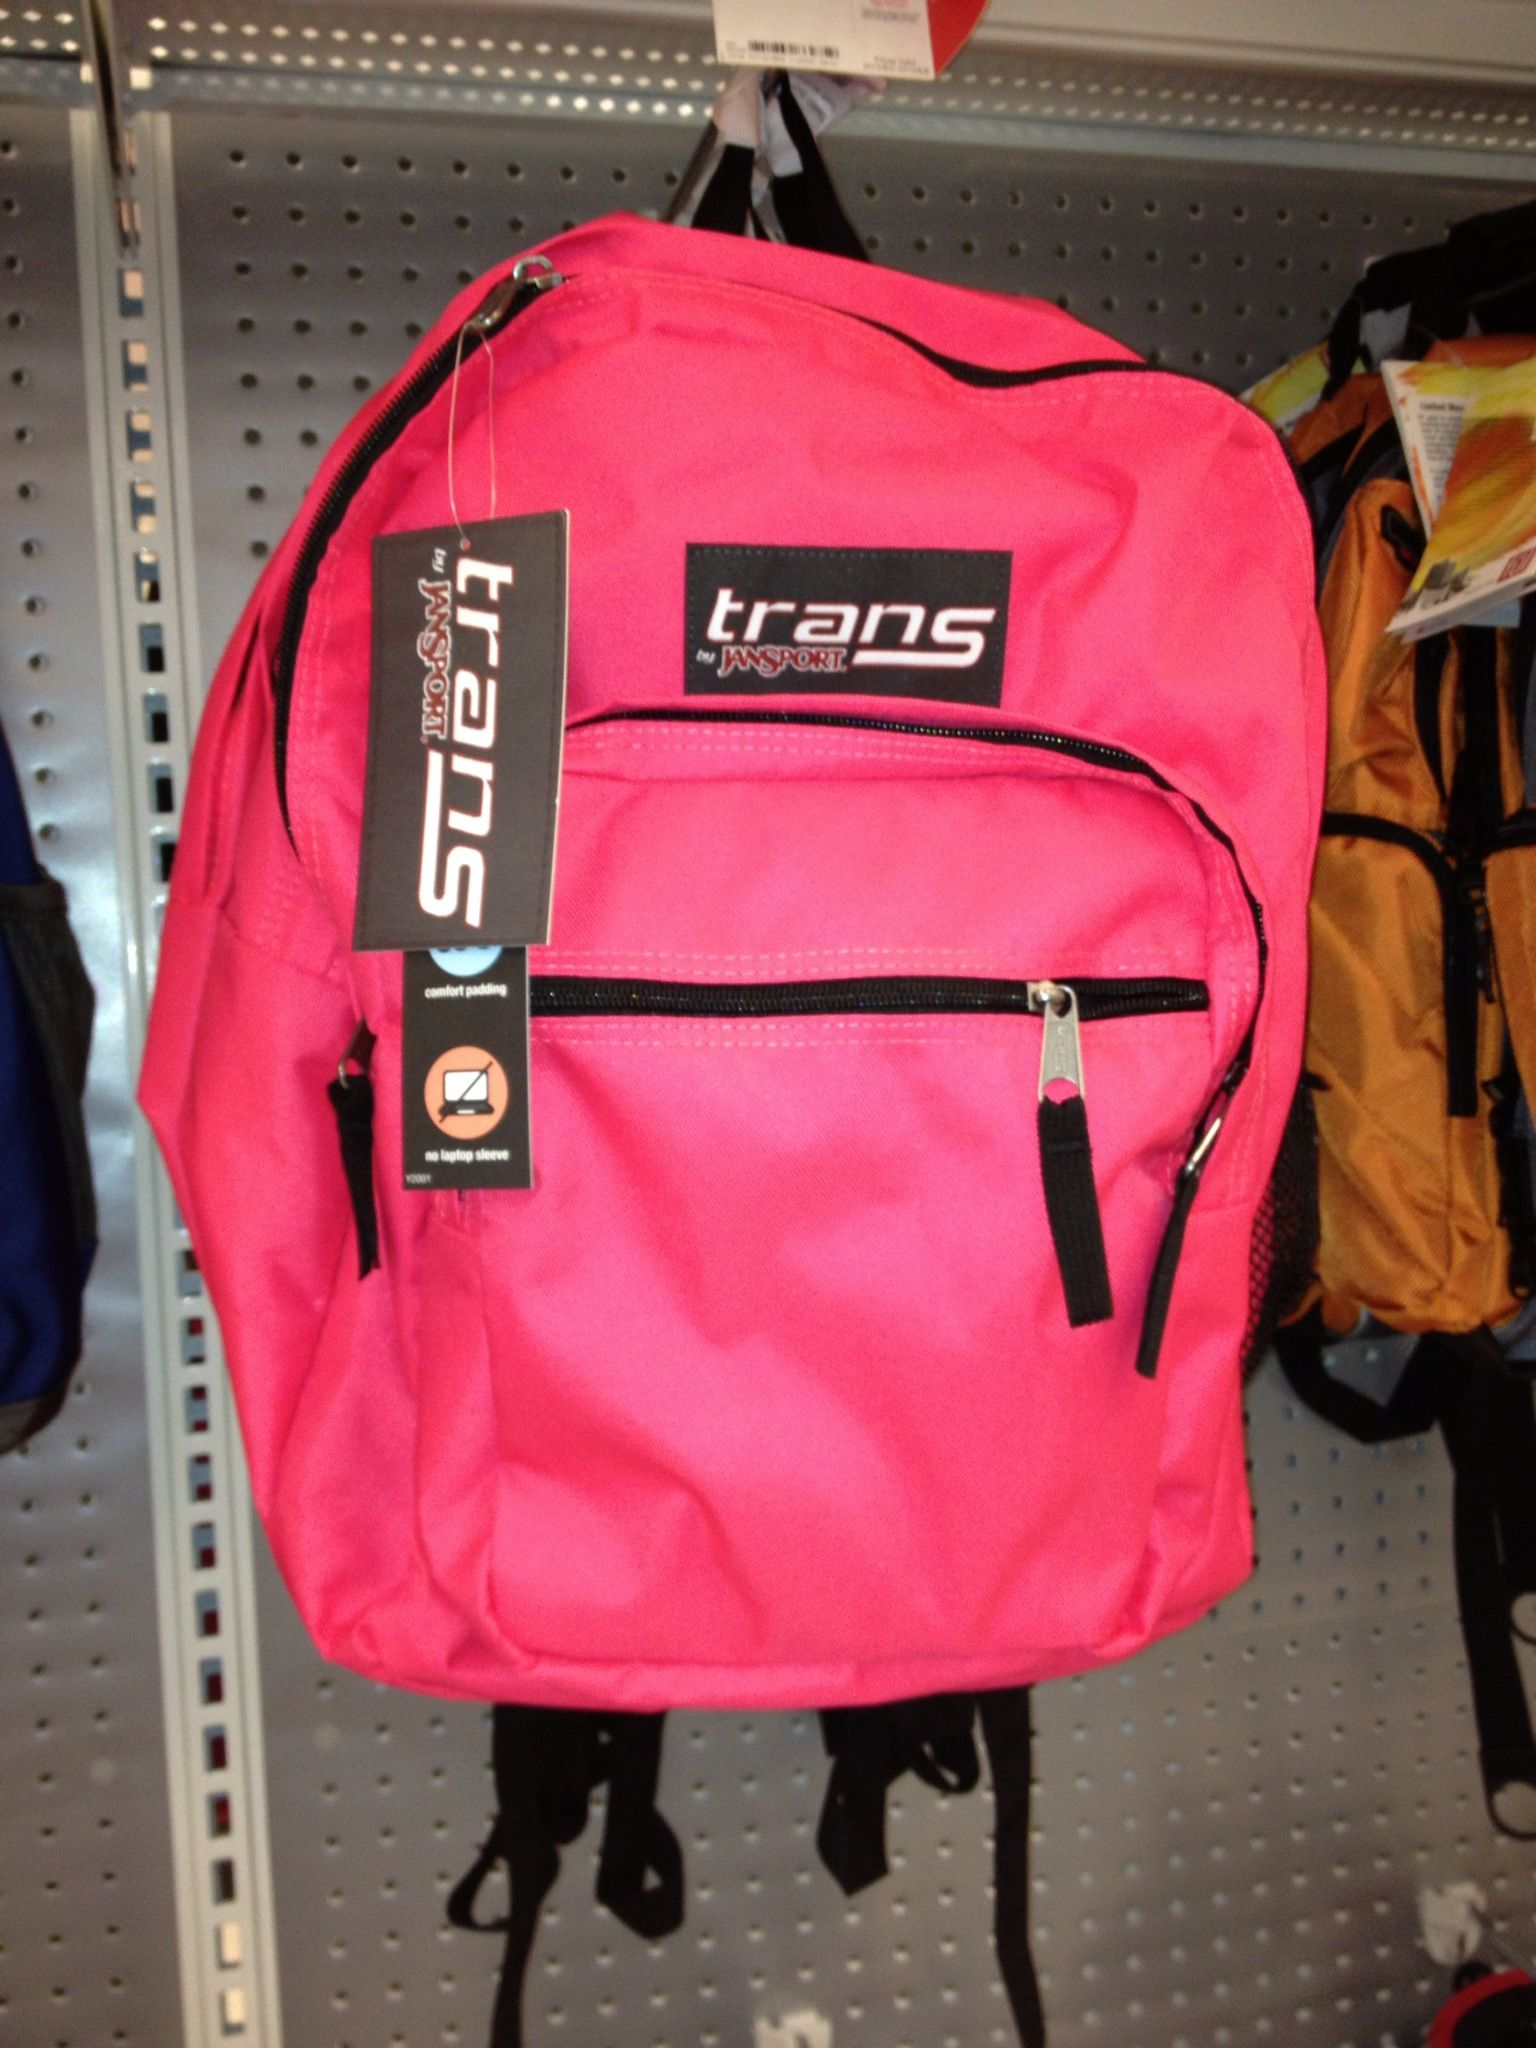 653fe6765921 Cute pink backpack-trans jansport backpack